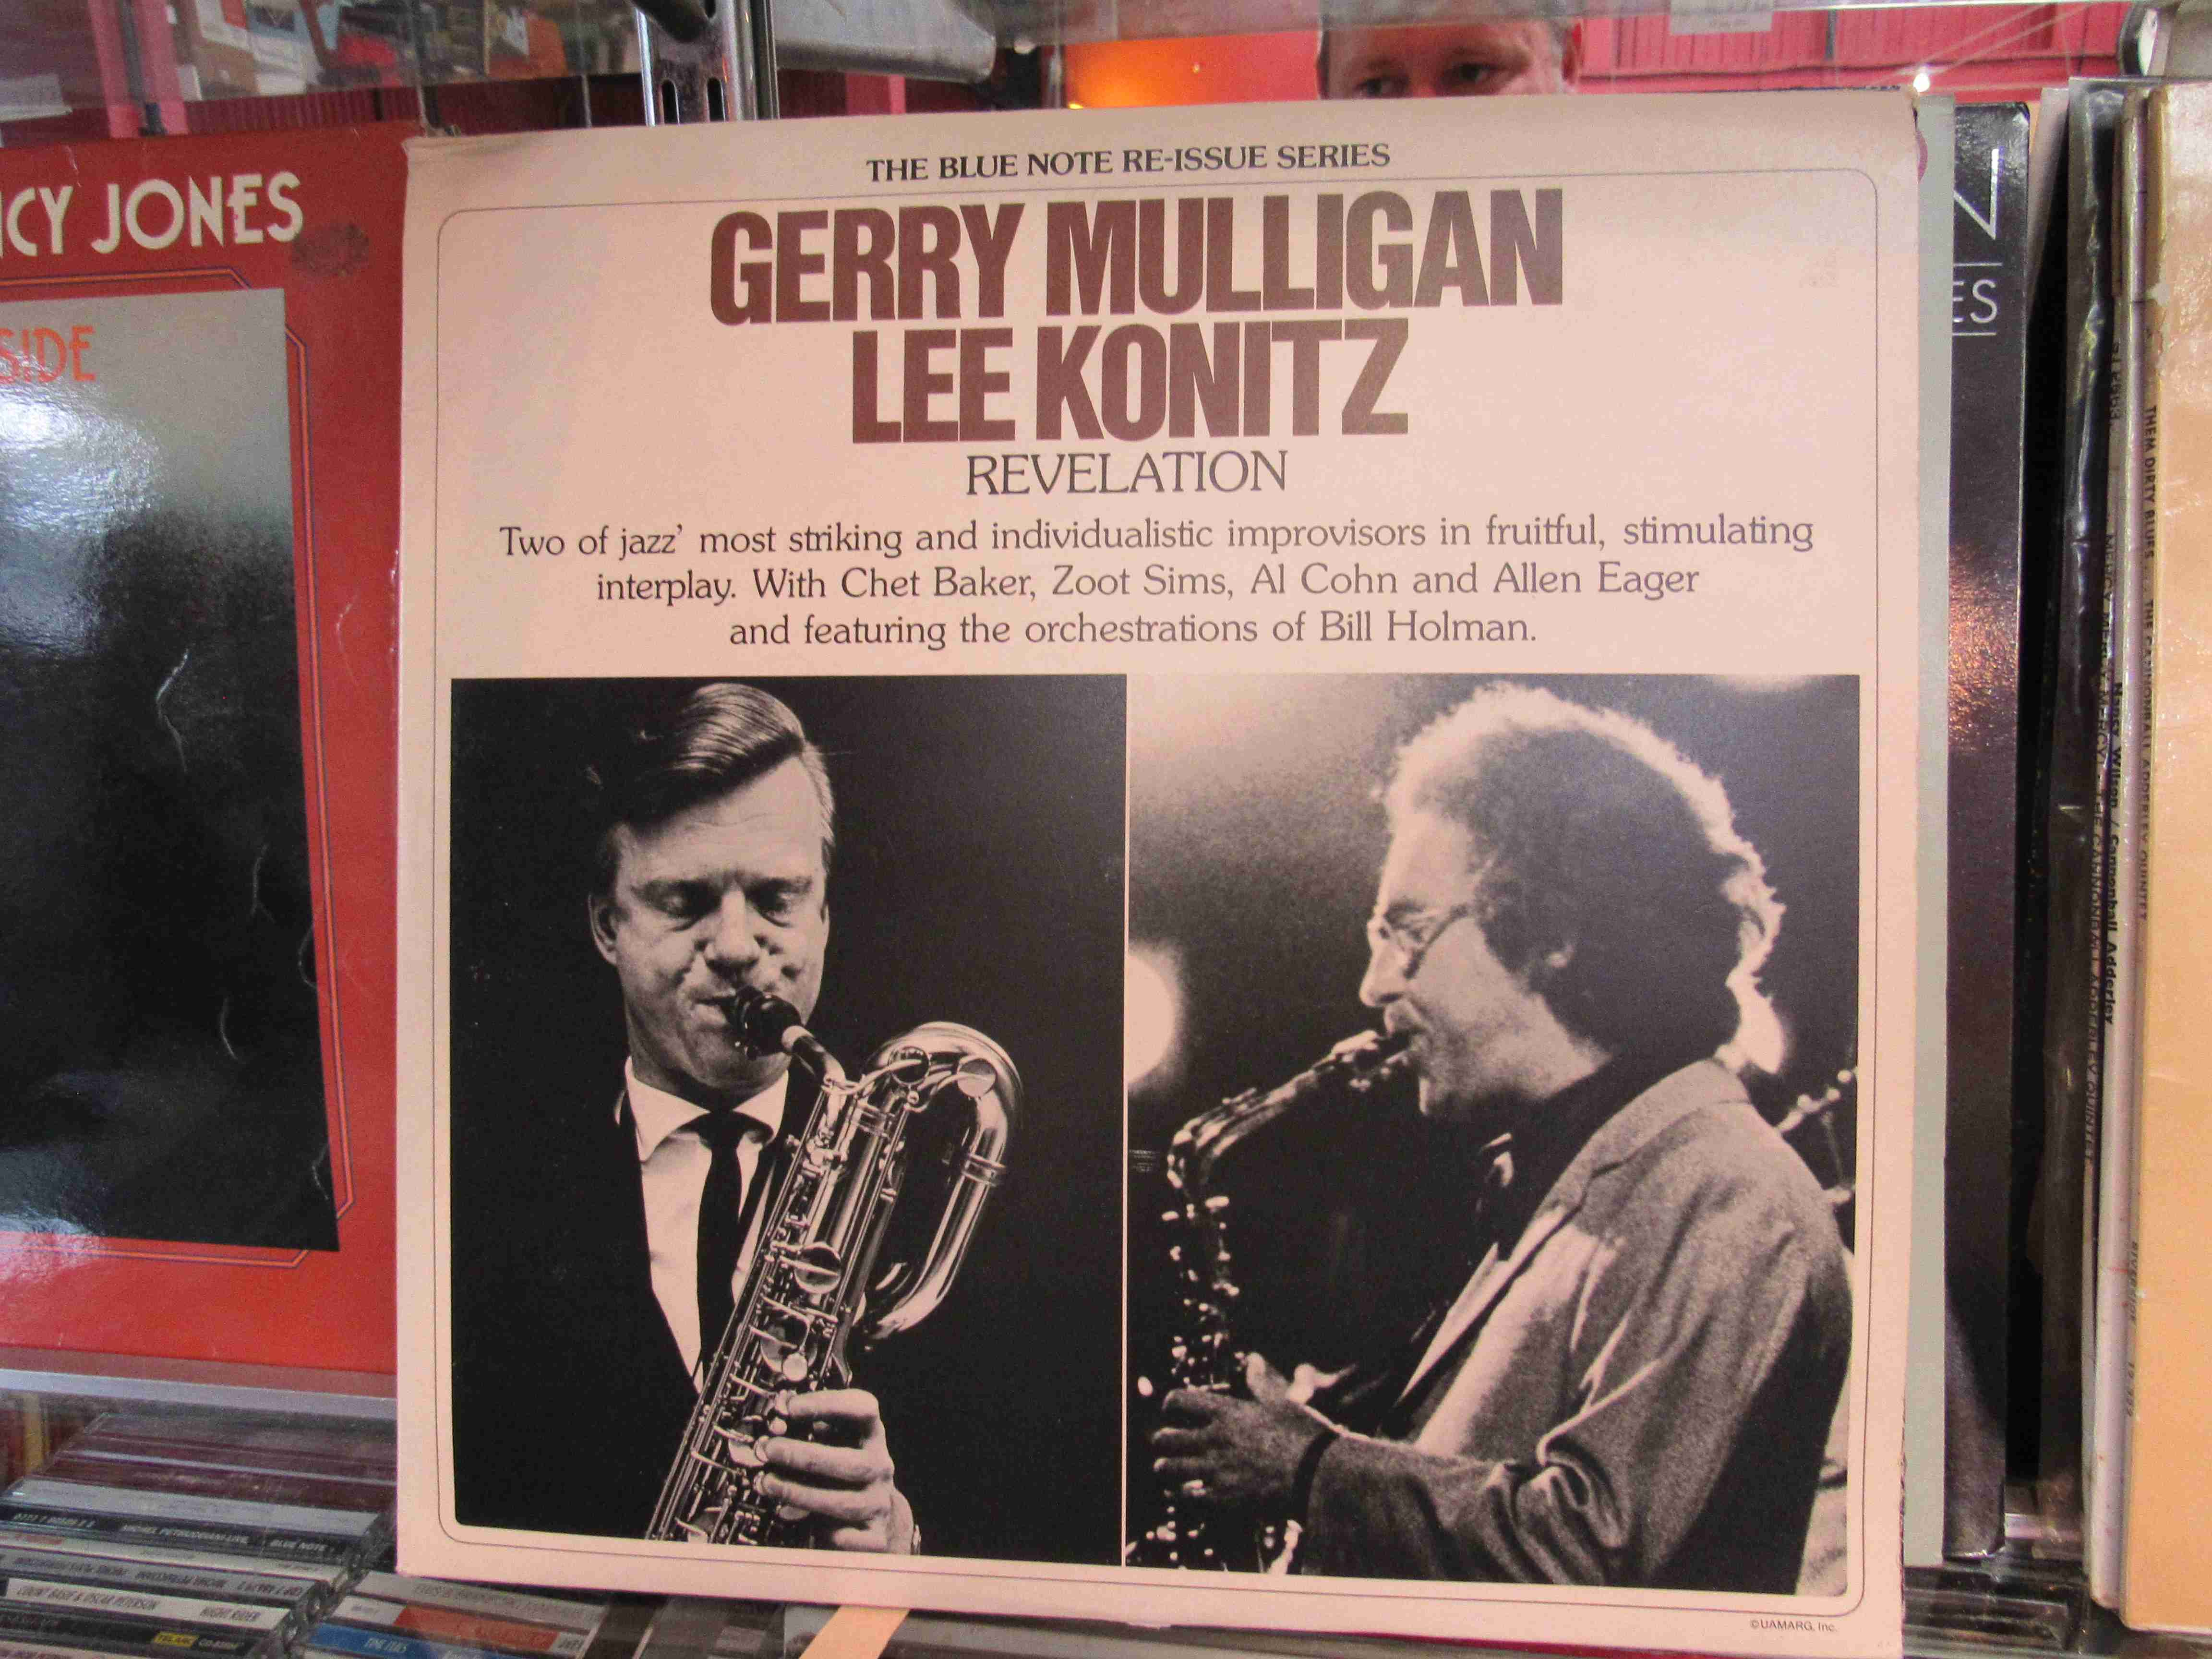 GERRY MULLIGAN: Eight LP's to include 'Revelation' (with Lee Konitz) BND 4016,